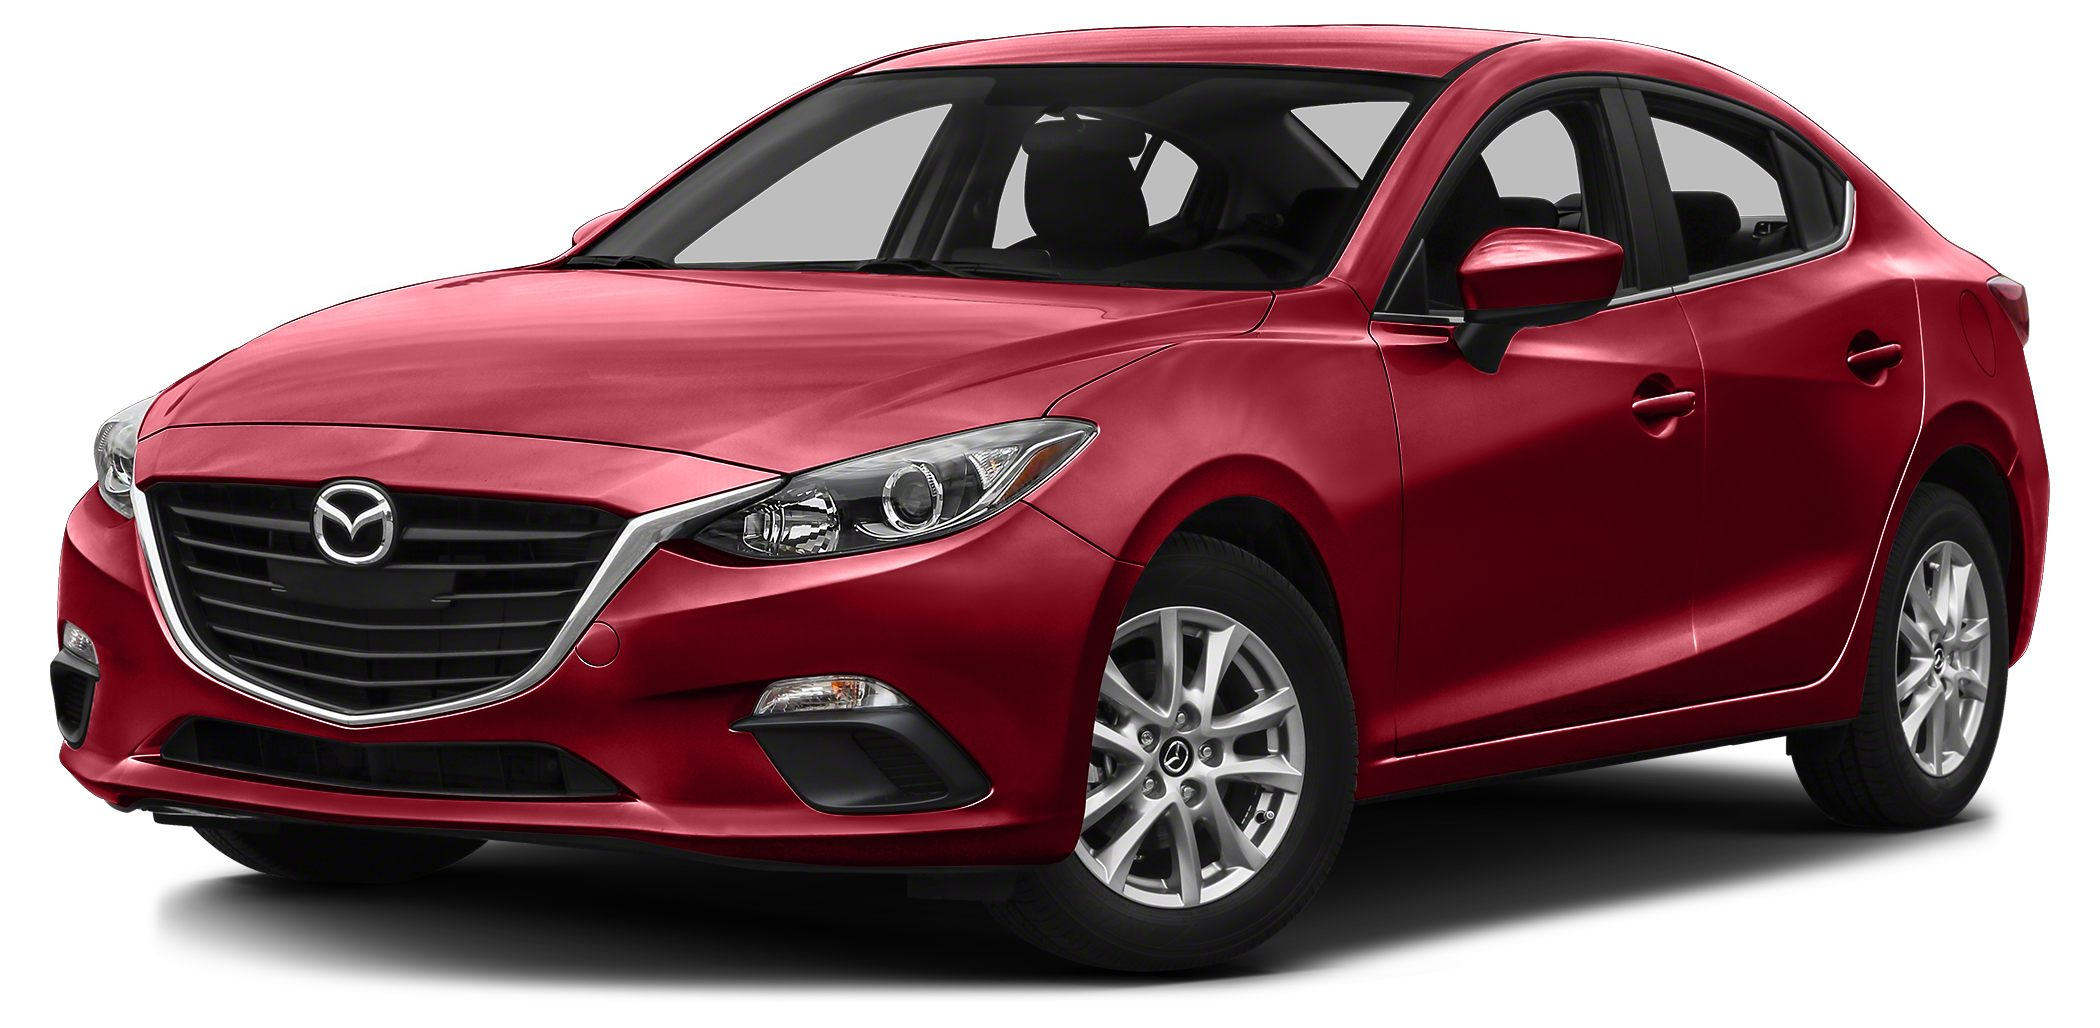 2015 Mazda MAZDA3 i Sport Climb inside the 2015 Mazda Mazda3 Comprehensive style mixed with all a